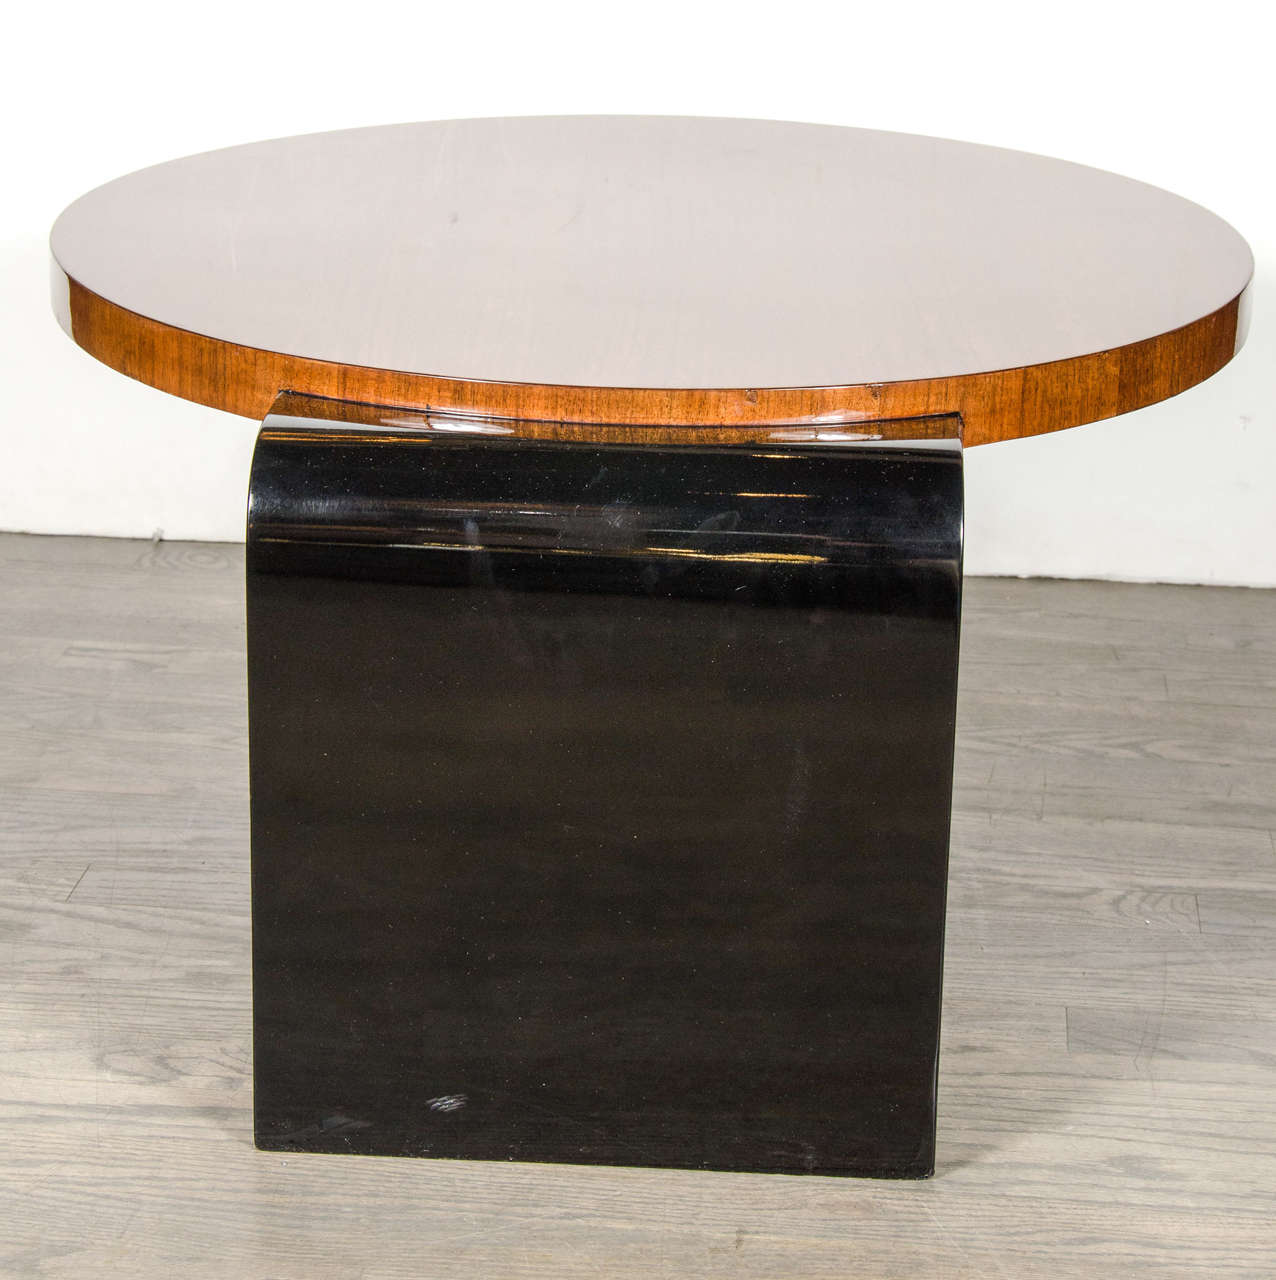 Mid-20th Century Streamline Art Deco Occasional Table in Walnut & Black Lacquer by Modernage For Sale